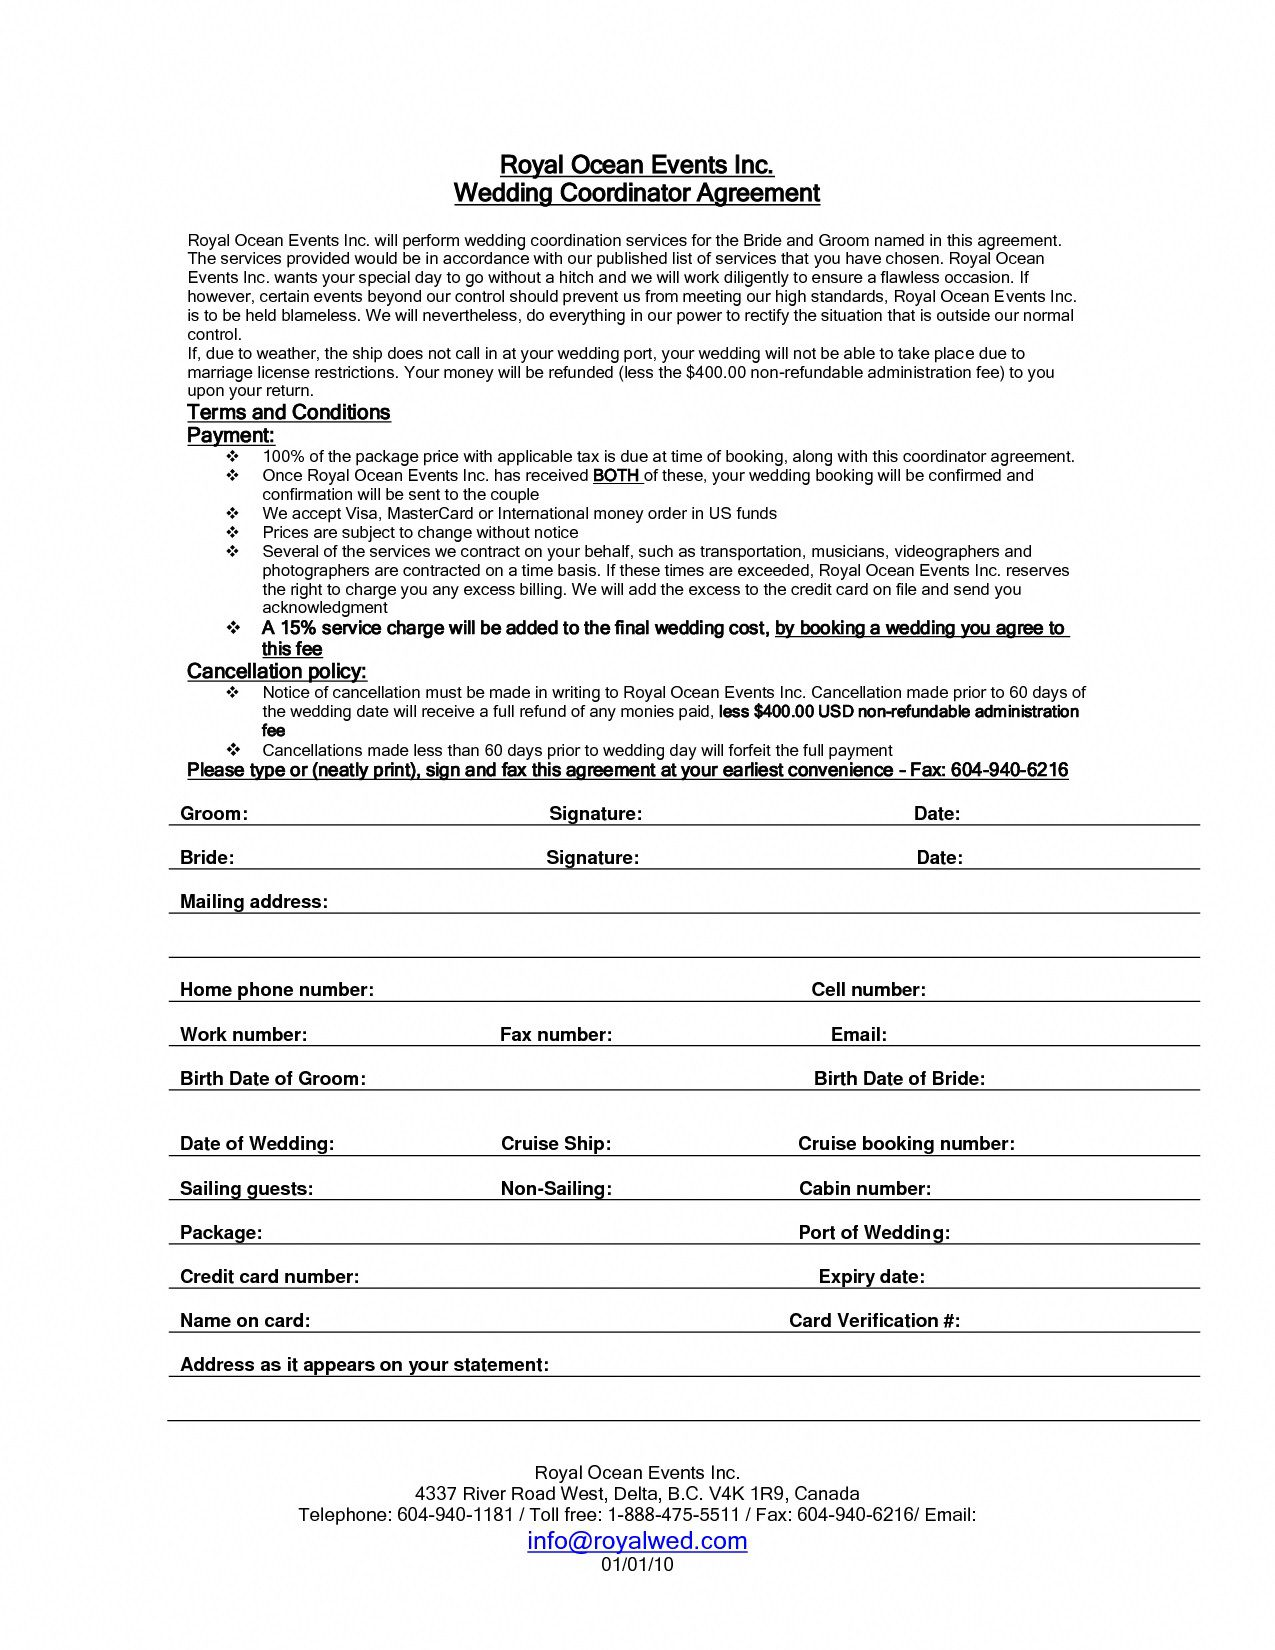 001 Awesome Wedding Planner Contract Template High Def  Word Planning Coordinator FreeFull